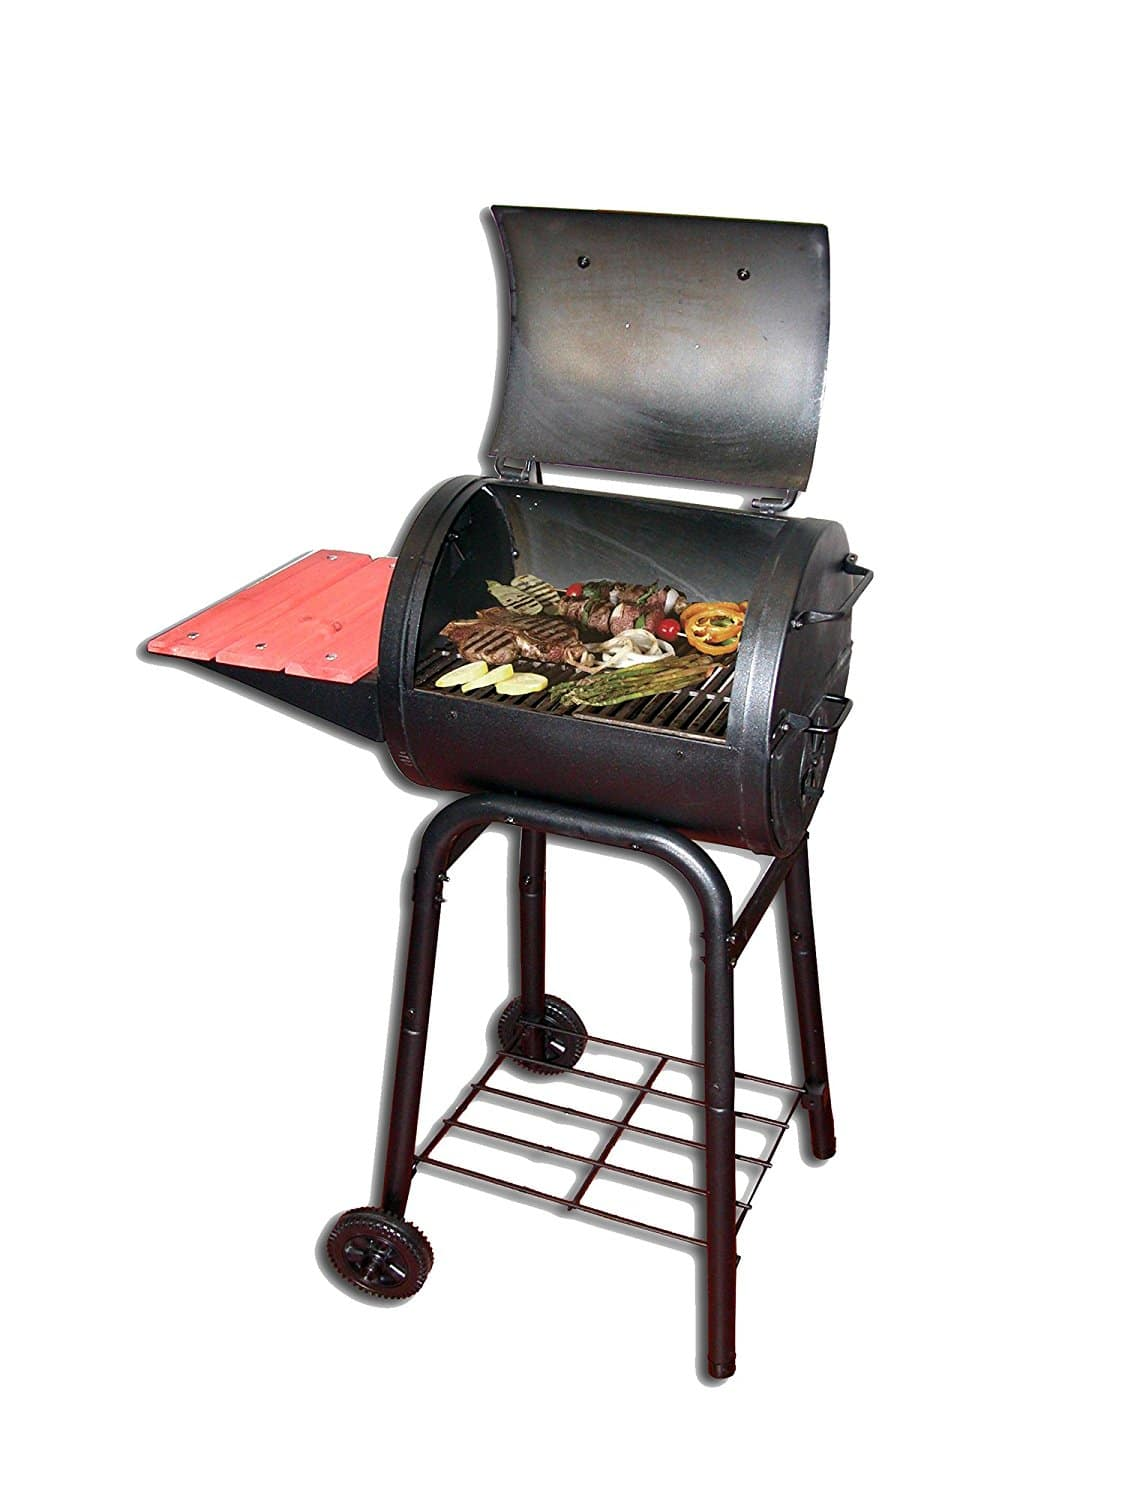 Char Griller 1515 Patio Pro Charcoal Grill The Grilling Life